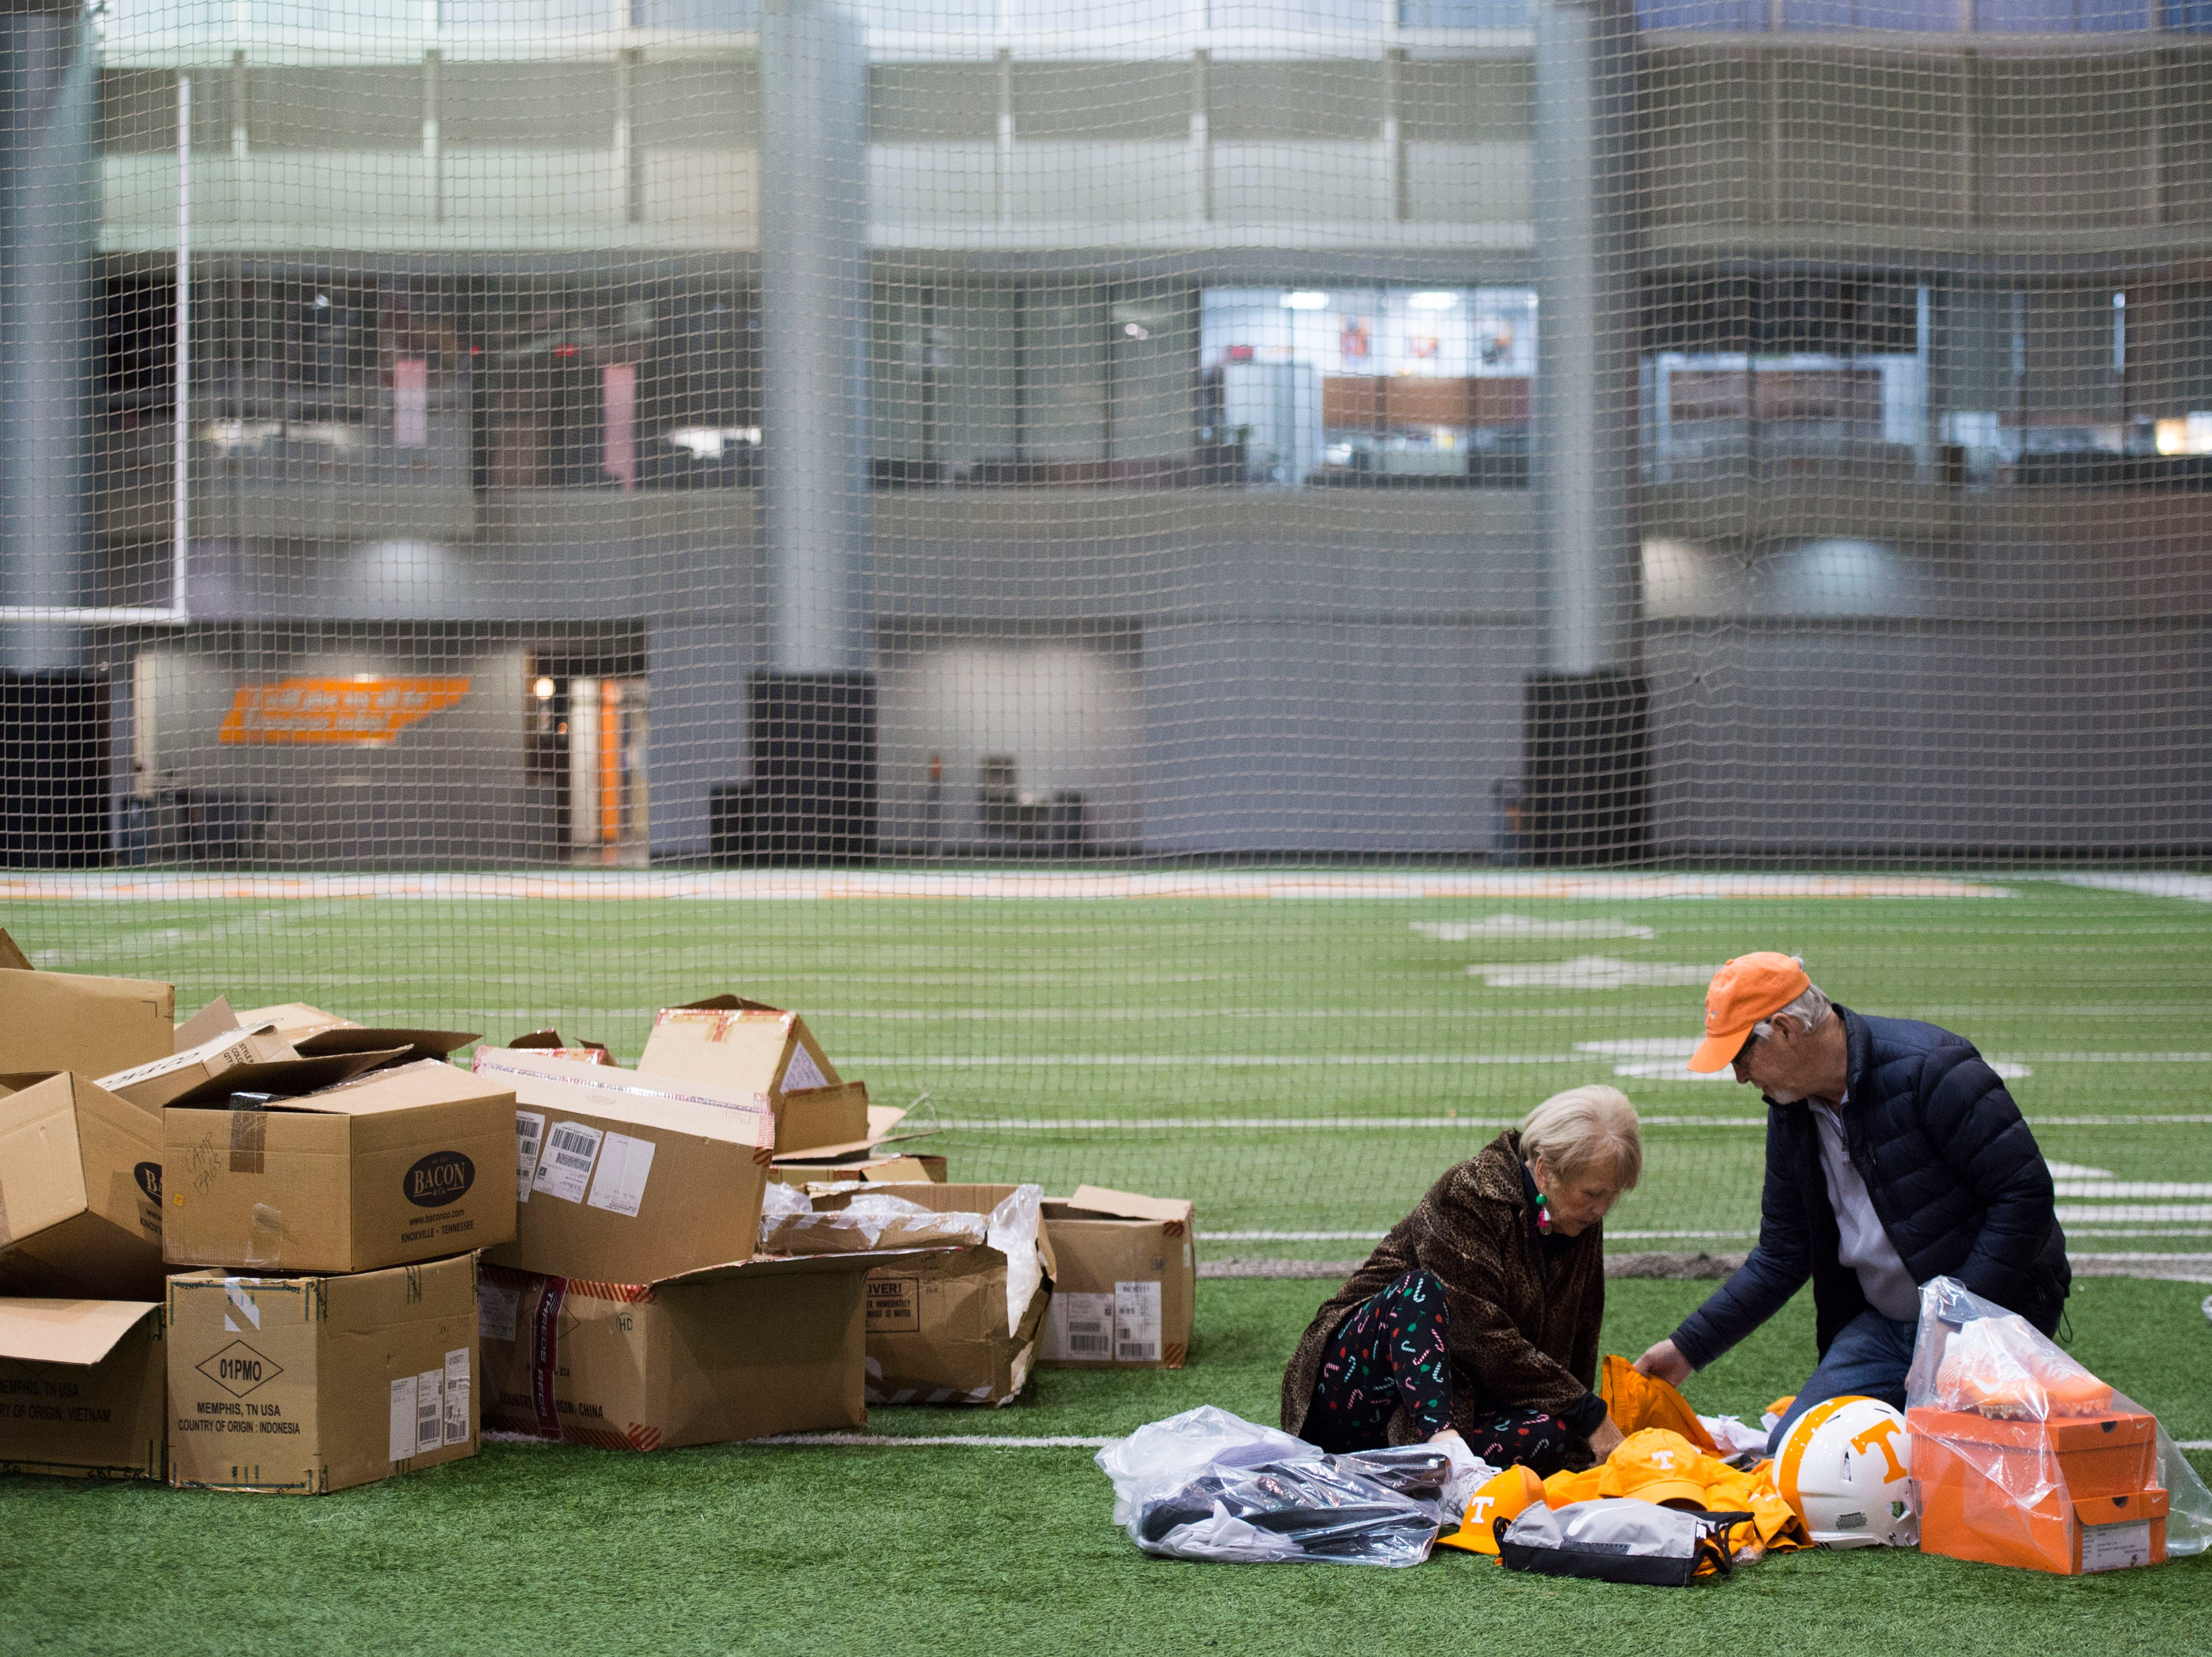 Carol Ann and Doyle Knight of Knoxville shop for athletic apparel on Tennessee football's indoor practice field during University of Tennessee Athletic Department's inventory sale Wednesday, Dec. 12, 2018. Helmets and jerseys were sold along side the discount gear for hundreds of dollars.